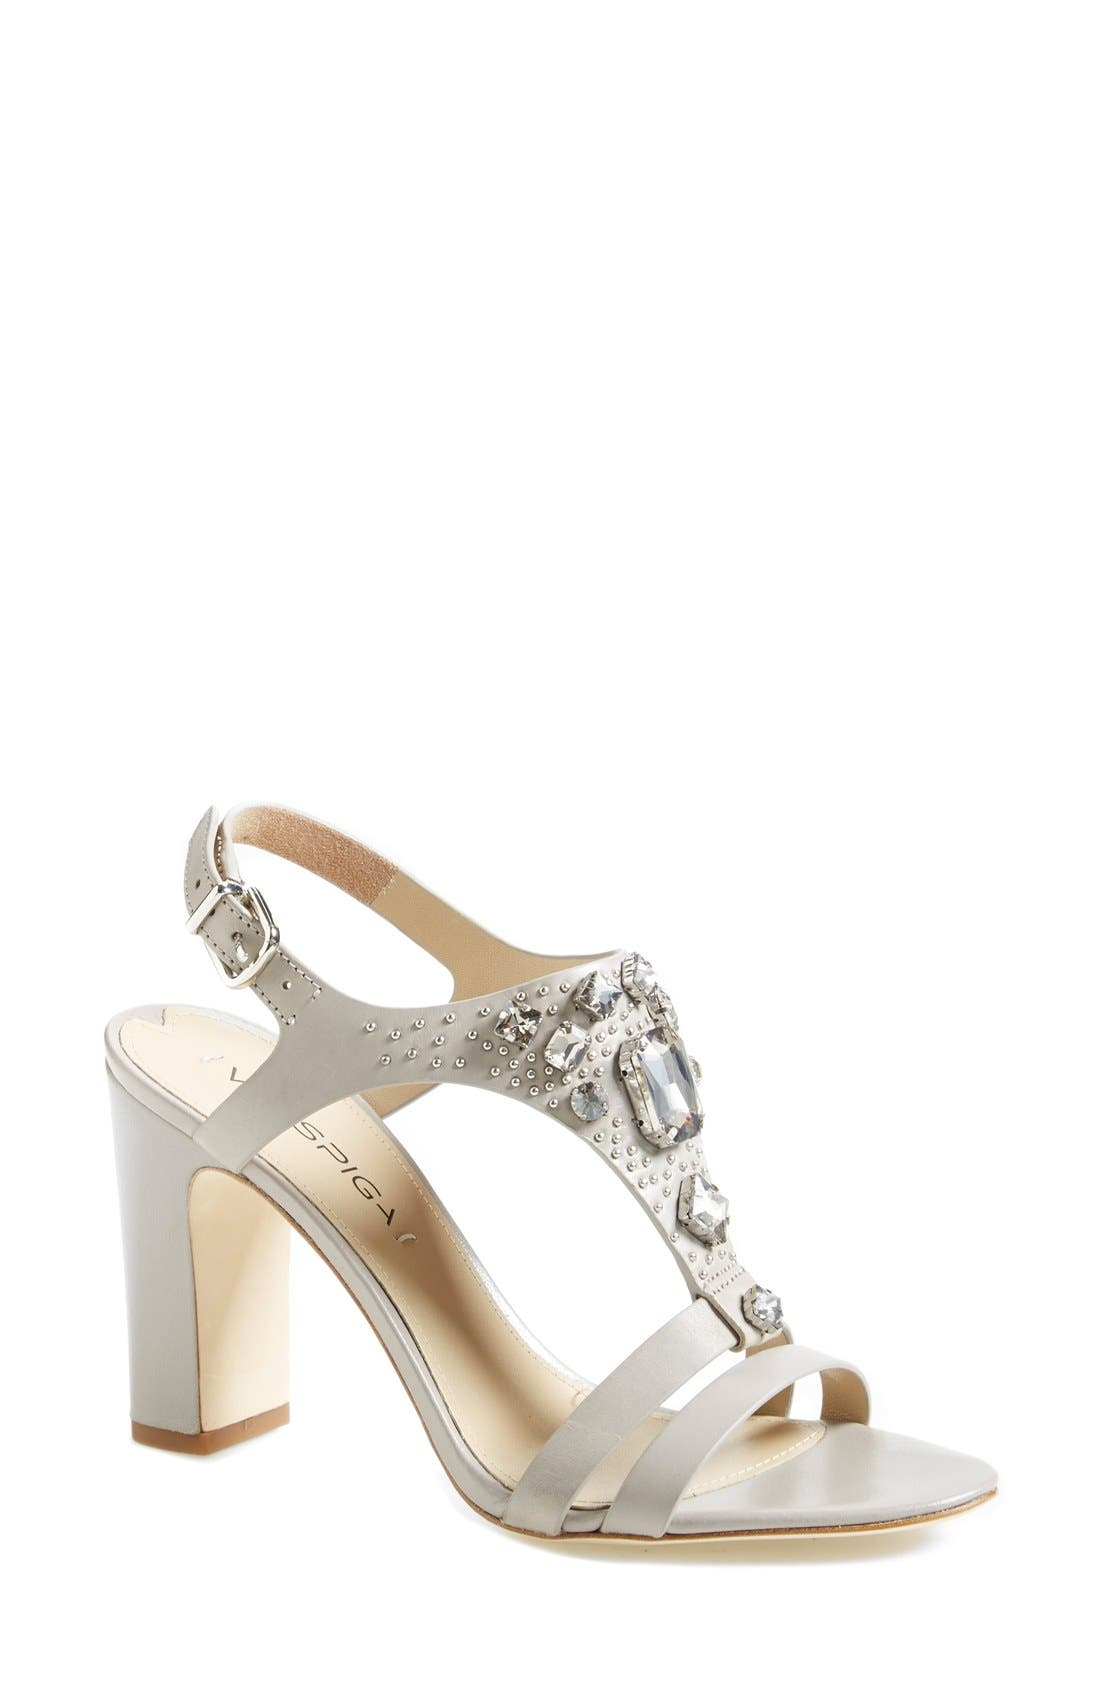 Main Image - Via Spiga 'Alec' Sandal (Women)